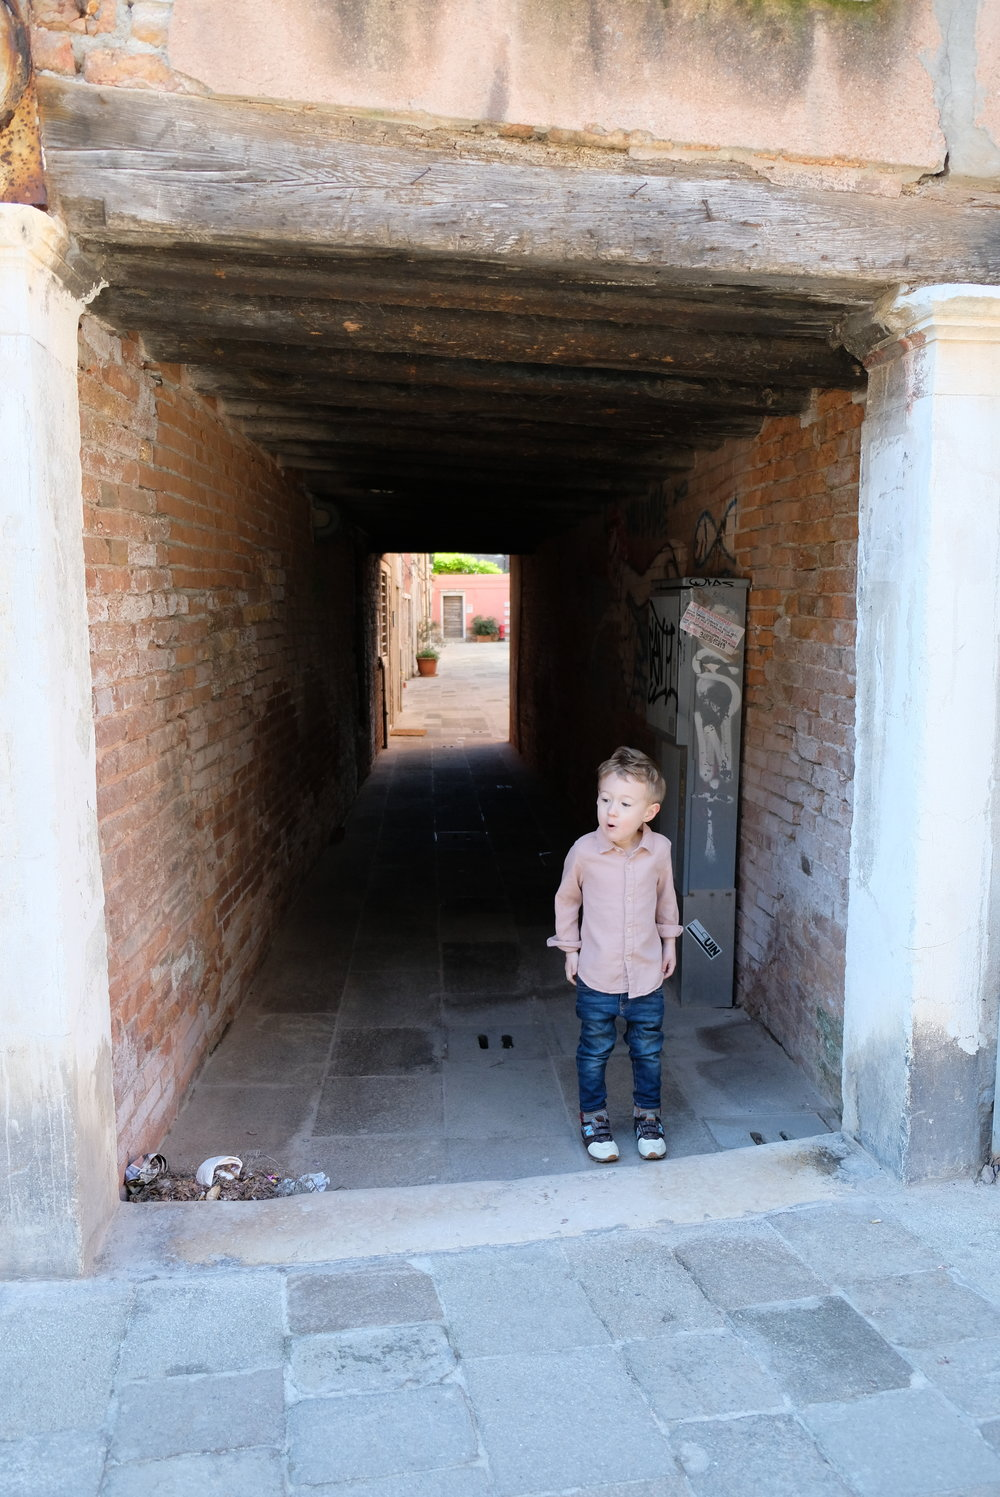 Street Scene in the Dosoduro DIstrict of Venice, Italy | Venice with Kids | Blog Post by Totes and the City